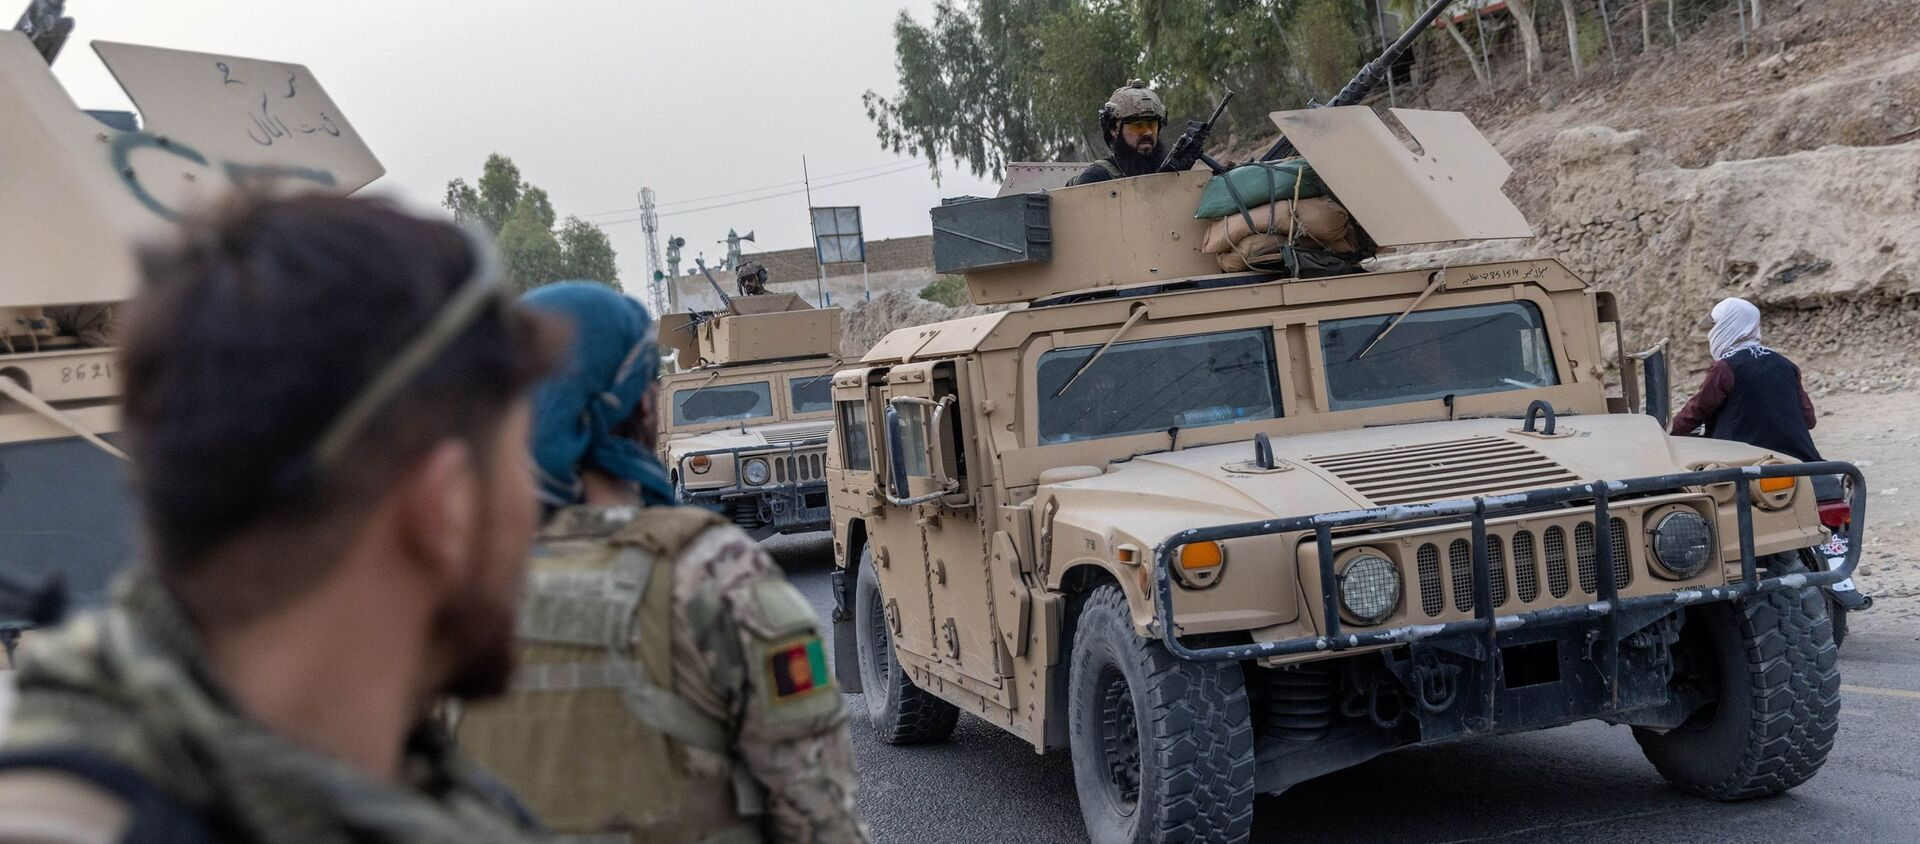 A convoy of Afghan Special Forces is seen during the rescue mission of a police officer besieged at a check post surrounded by Taliban, in Kandahar province, Afghanistan, 13 July 2021. REUTERS/Danish Siddiqui - Sputnik International, 1920, 22.07.2021